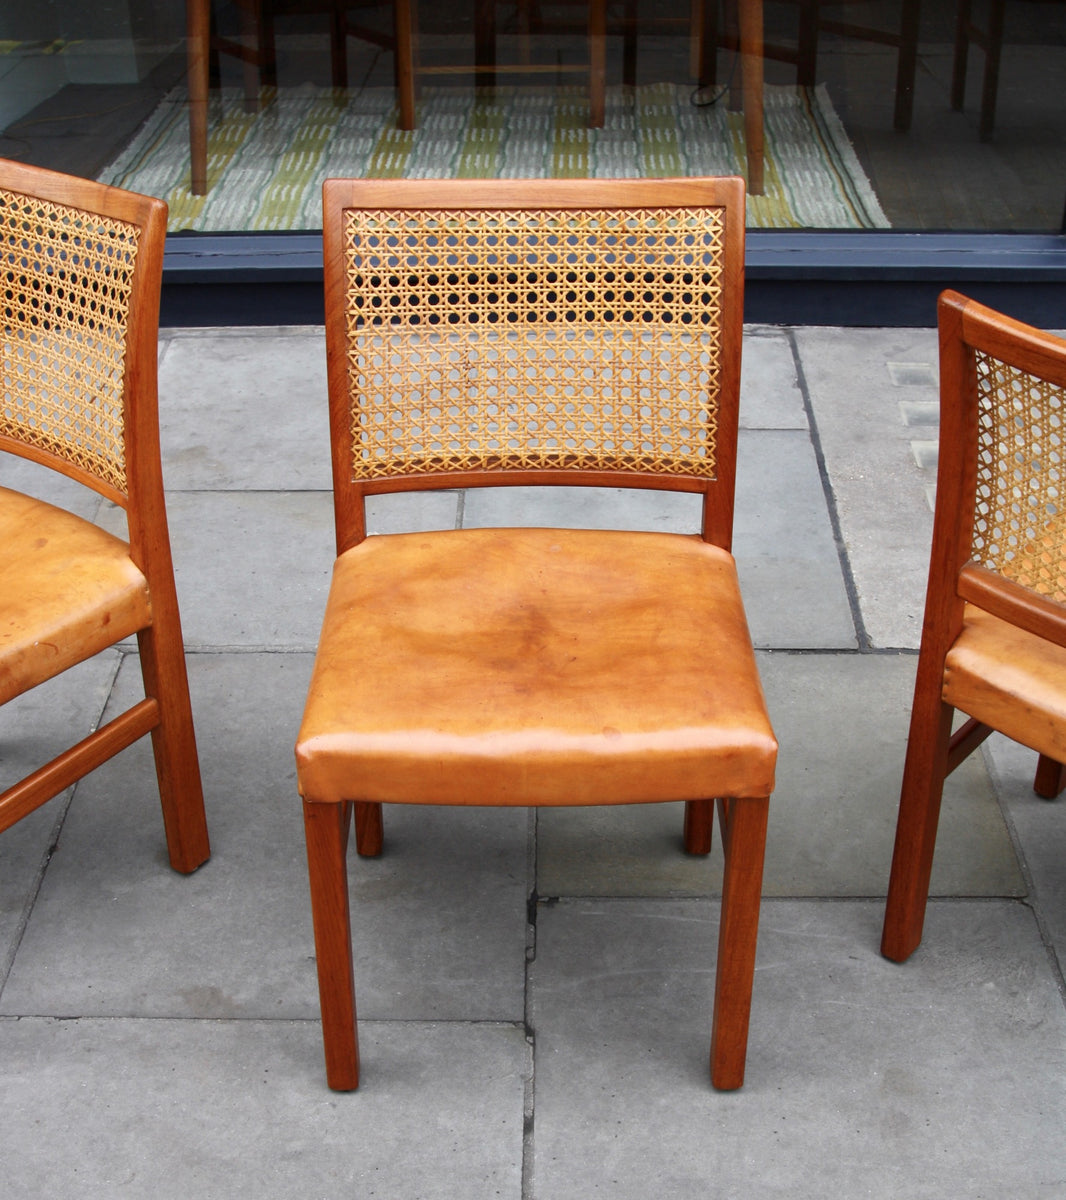 Four Teak, Leather & Cane Chairs Carl-Gustav Hiort af Ornäs  - Image 3